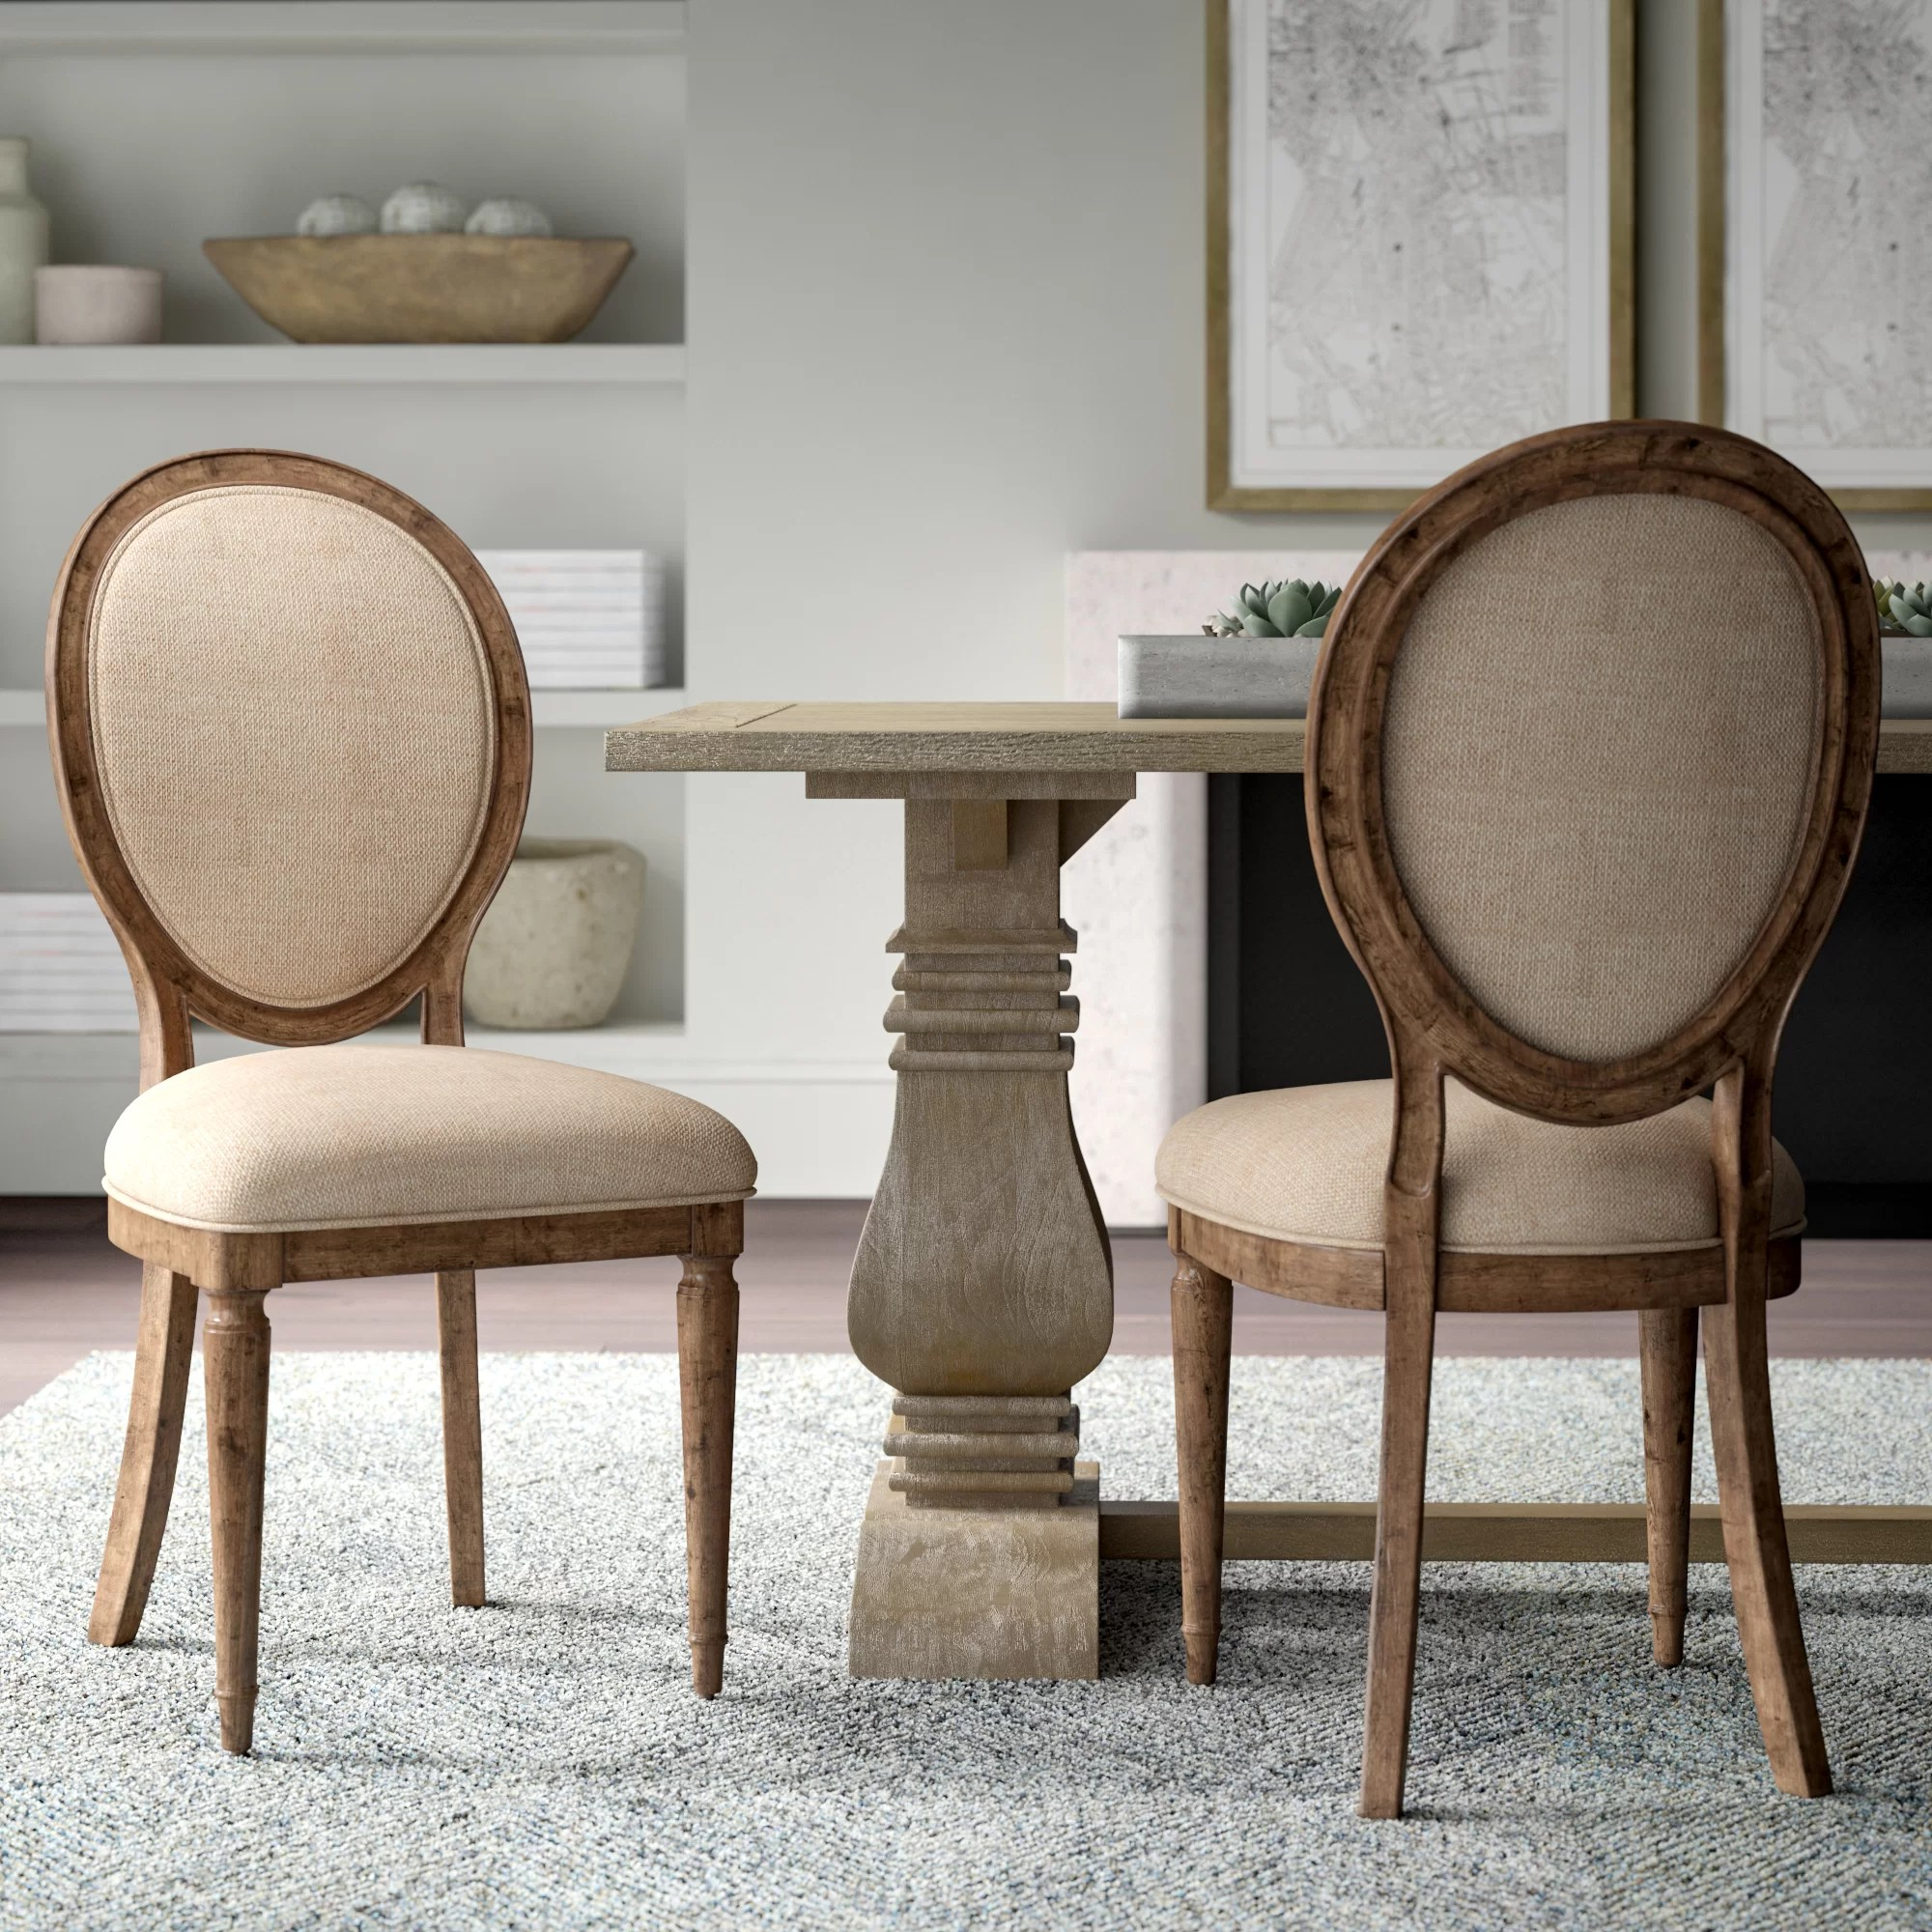 Upholstered Living Room Chairs Margie Upholstered Dining Chair